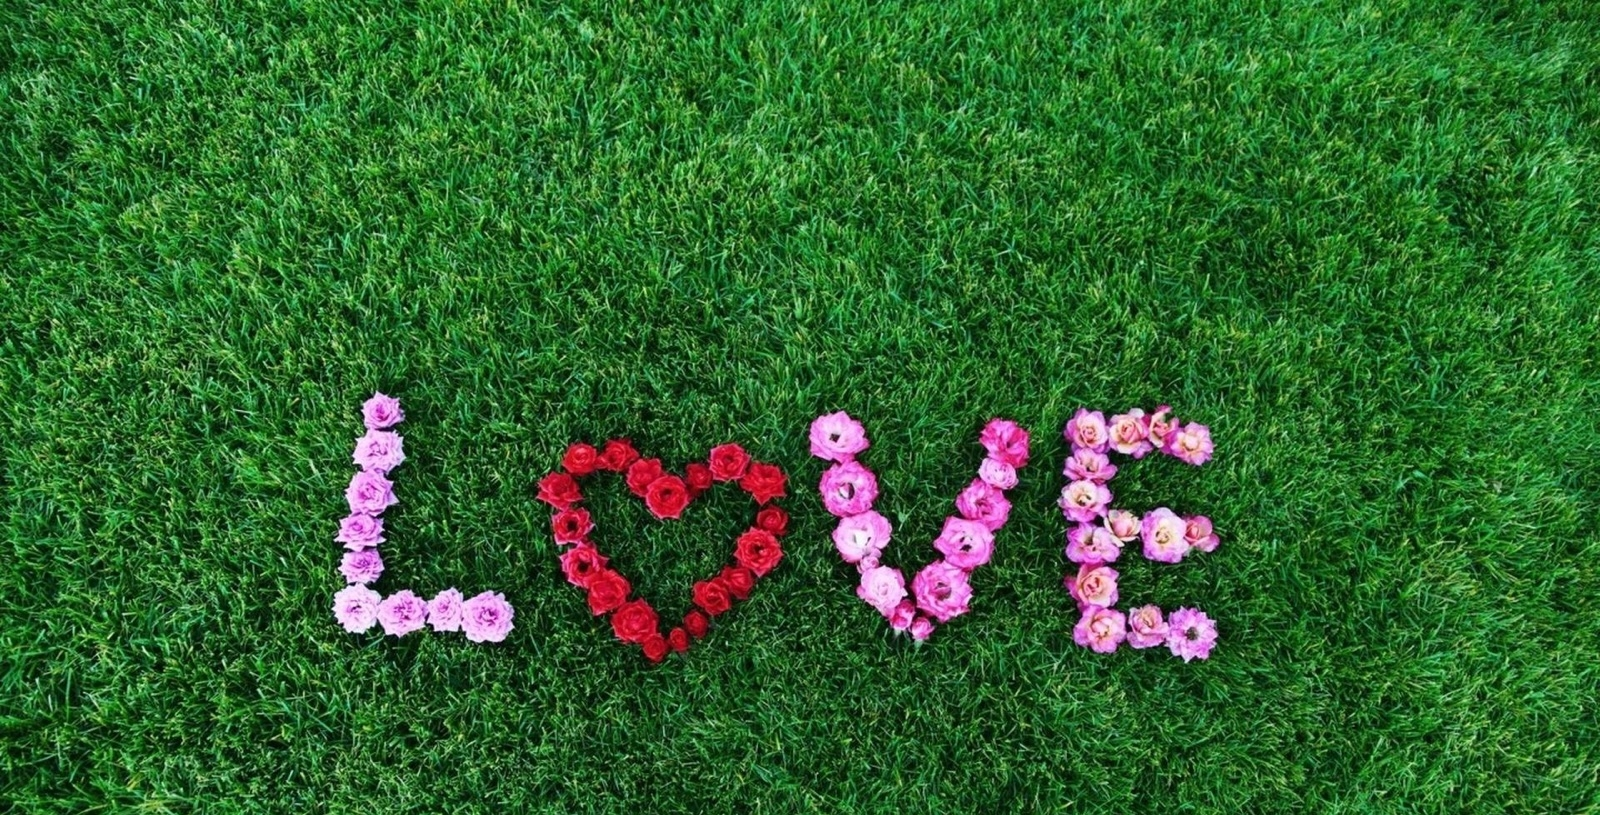 Love-written-by-flowers-on-green-grass.jpg.jpeg